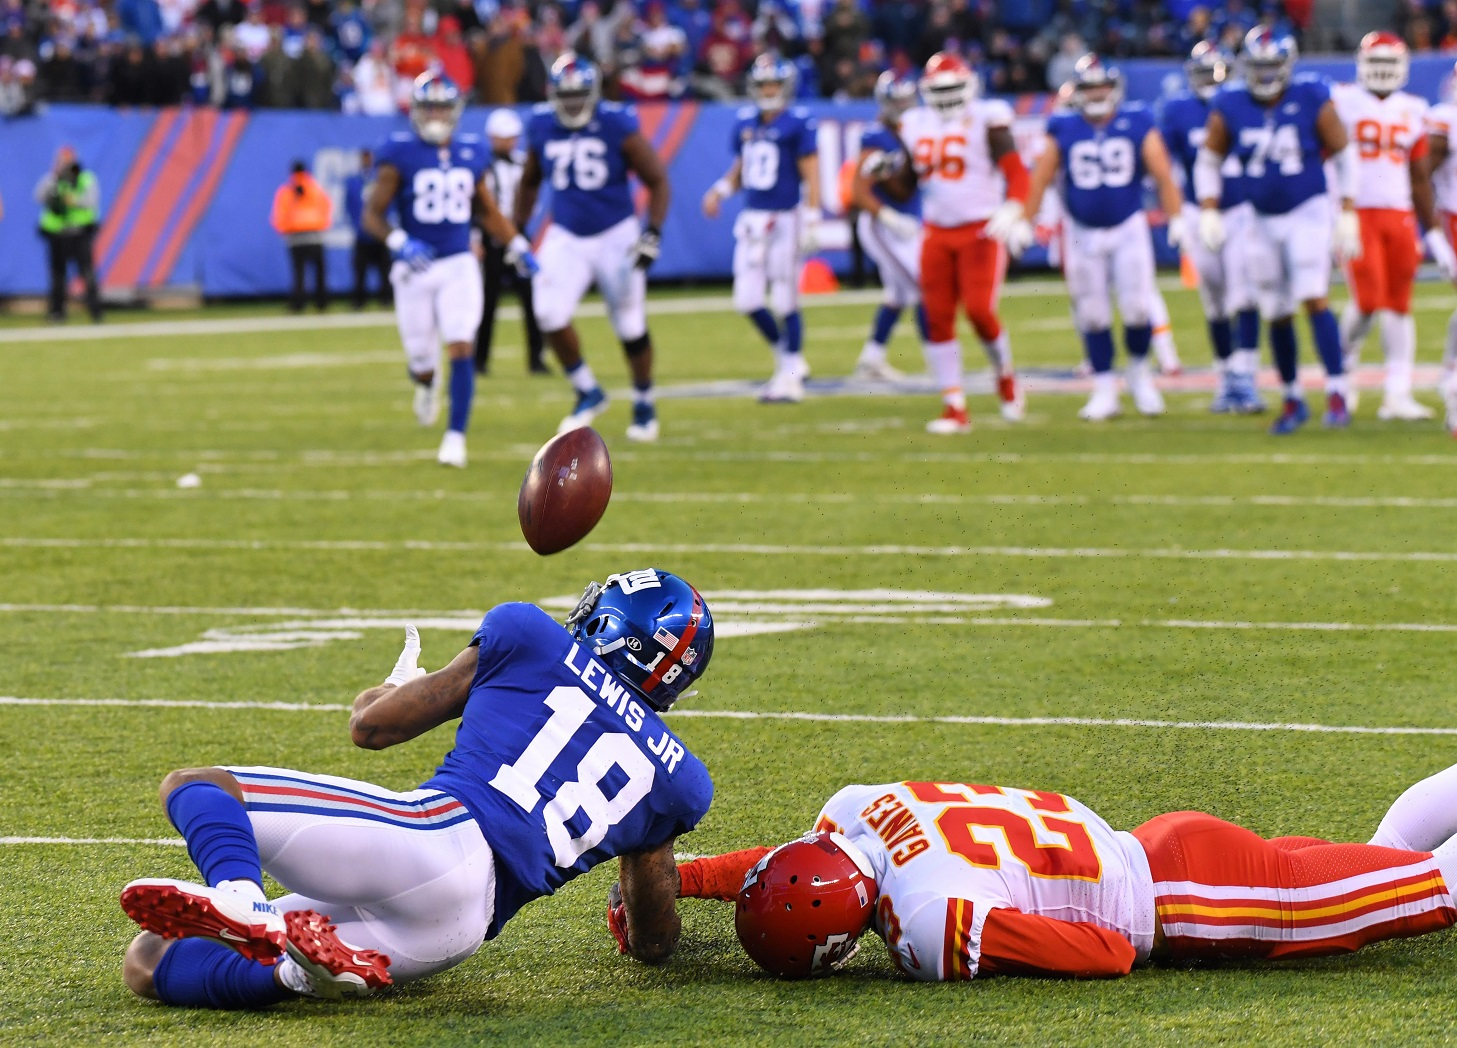 Giants vs. Chiefs: Biggest pregame storylines in Week 11